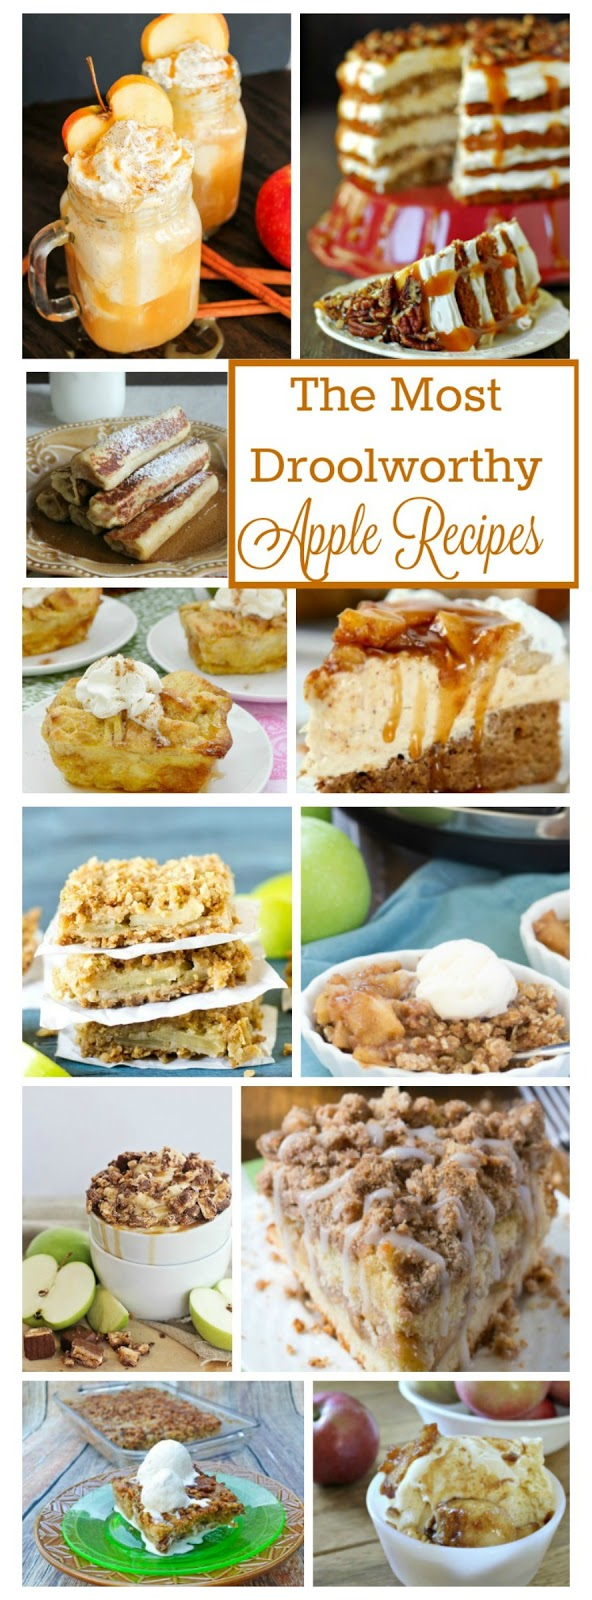 apple recipes, best apple recipes, droolworthy apple recipes